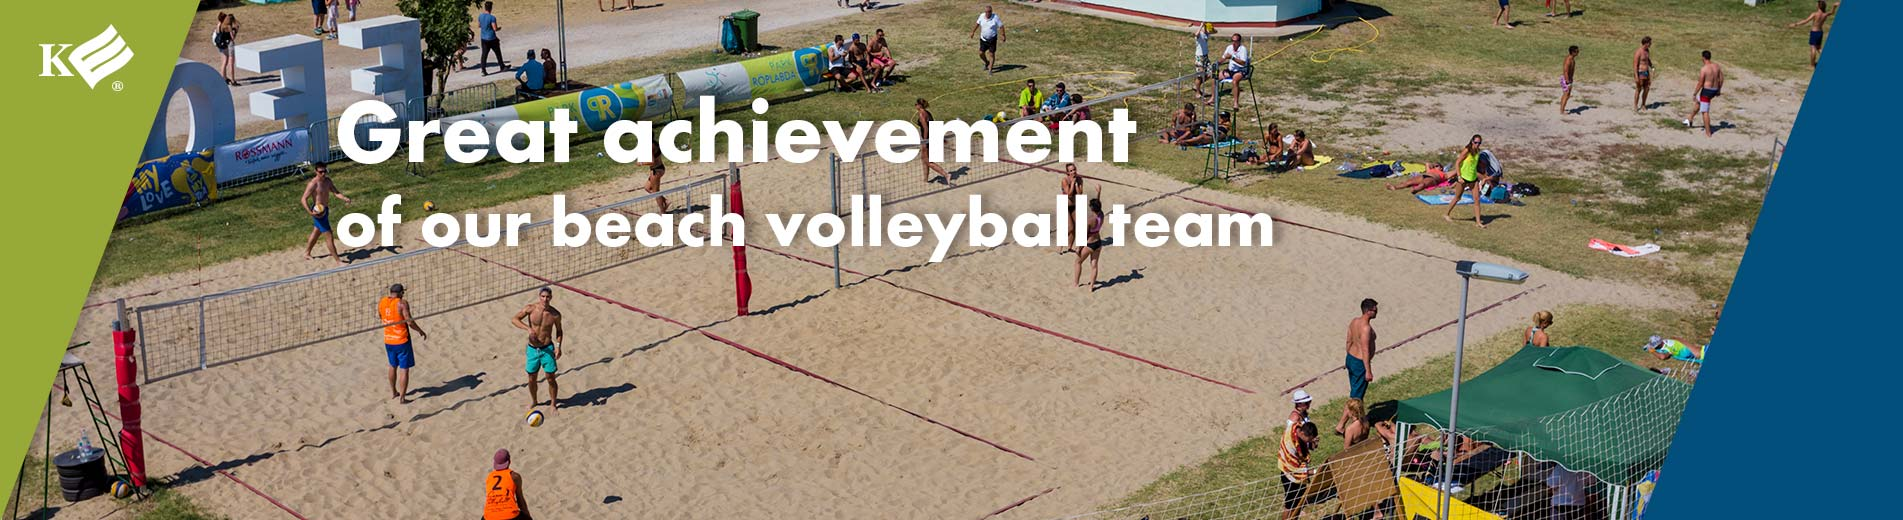 Great achievement of our beach volleyball team